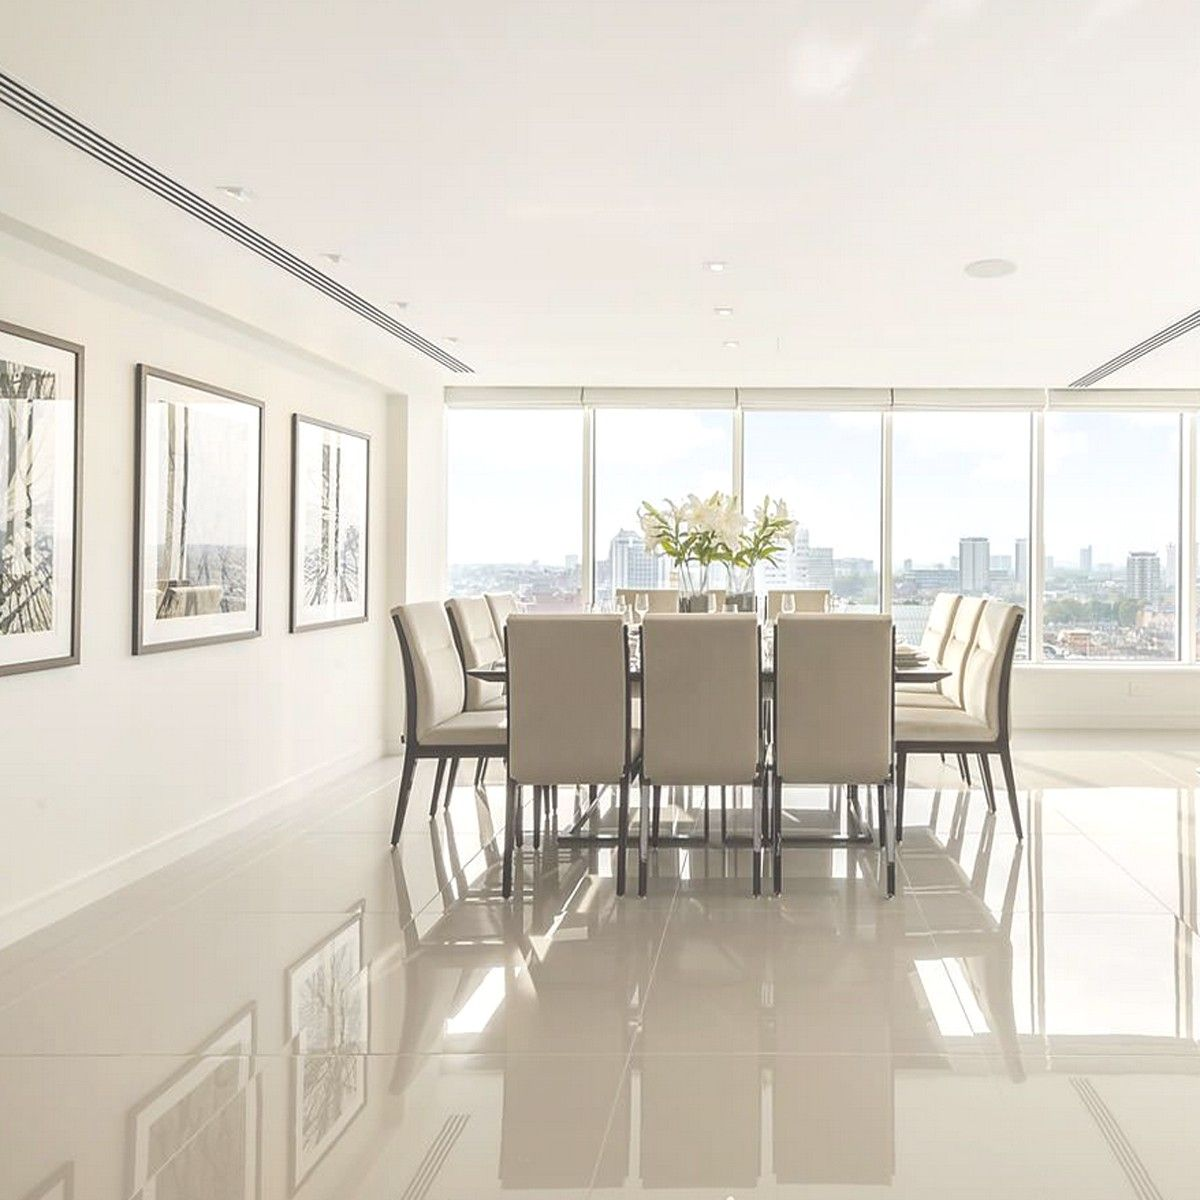 Like the look of a highgloss porcelain tile for the